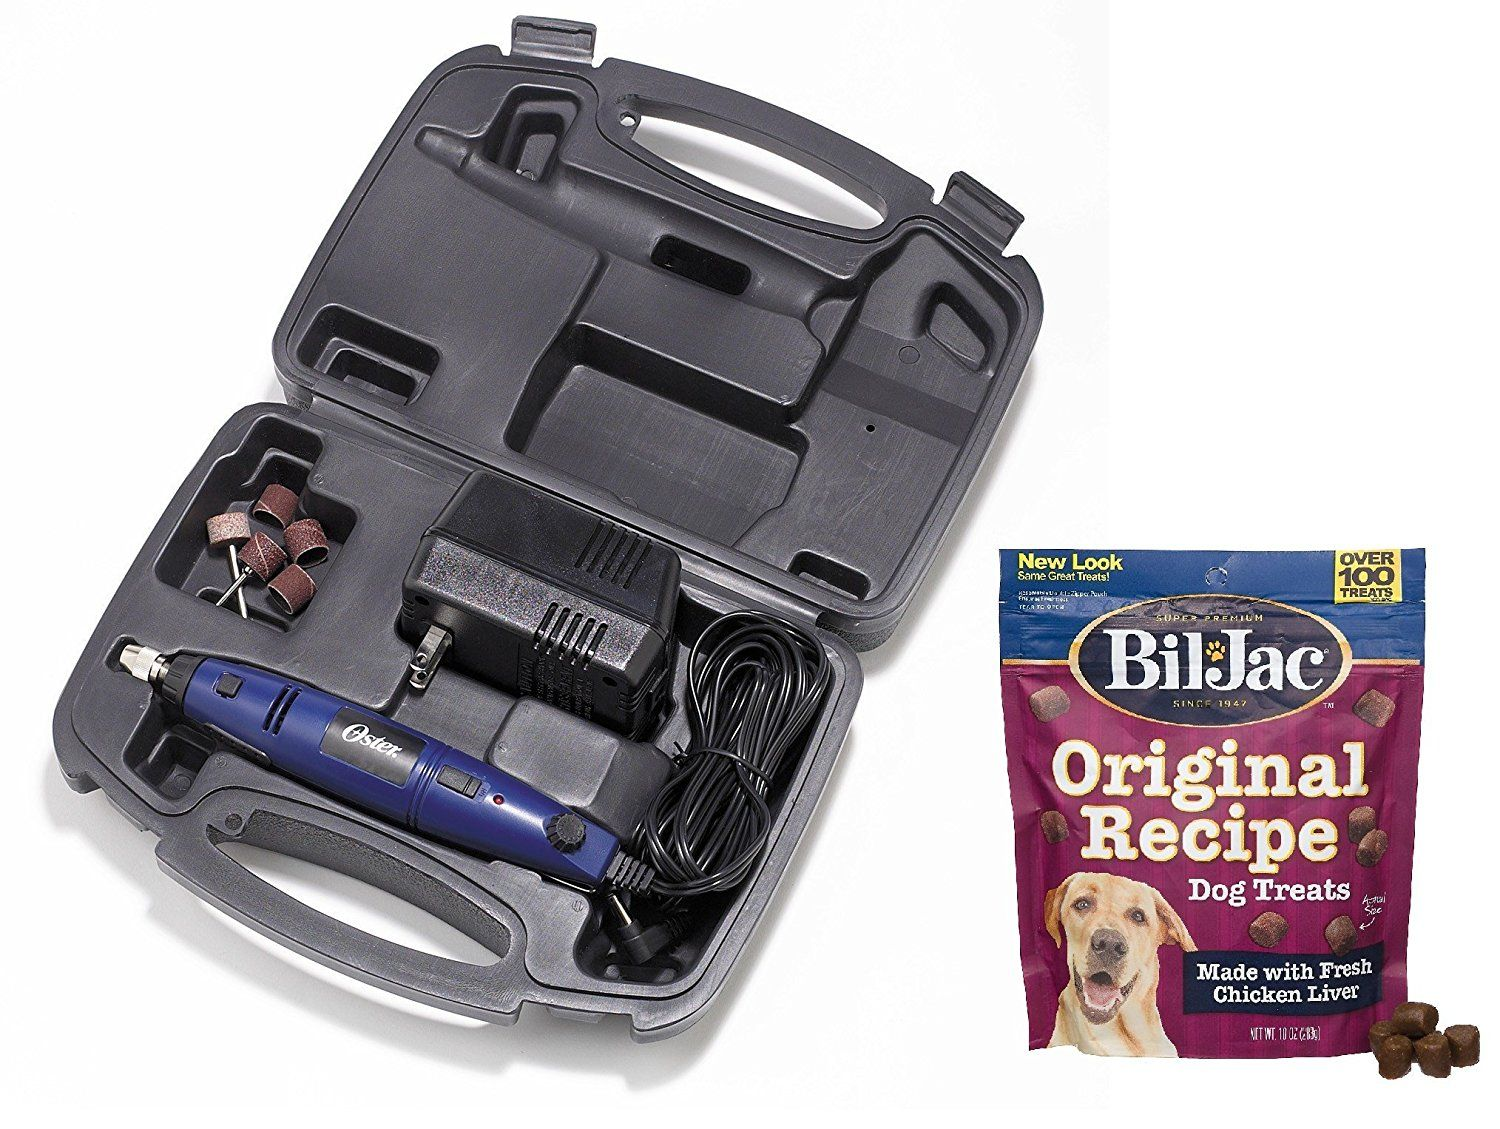 Oster Professional Nail Grinder Kit (Corded) Includes